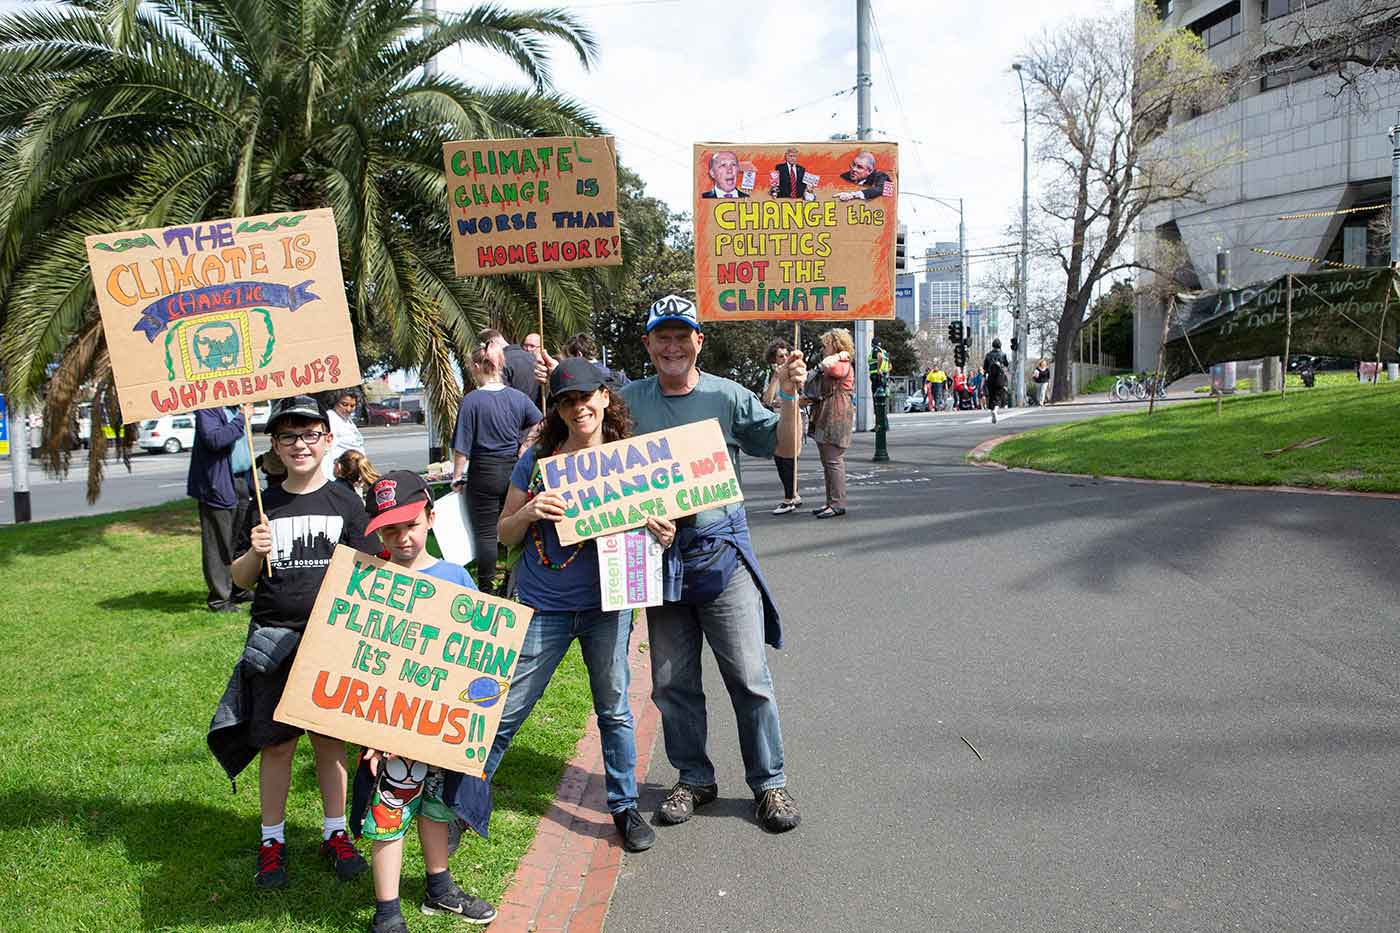 Protesters at a rally against climate change. - click to view larger image